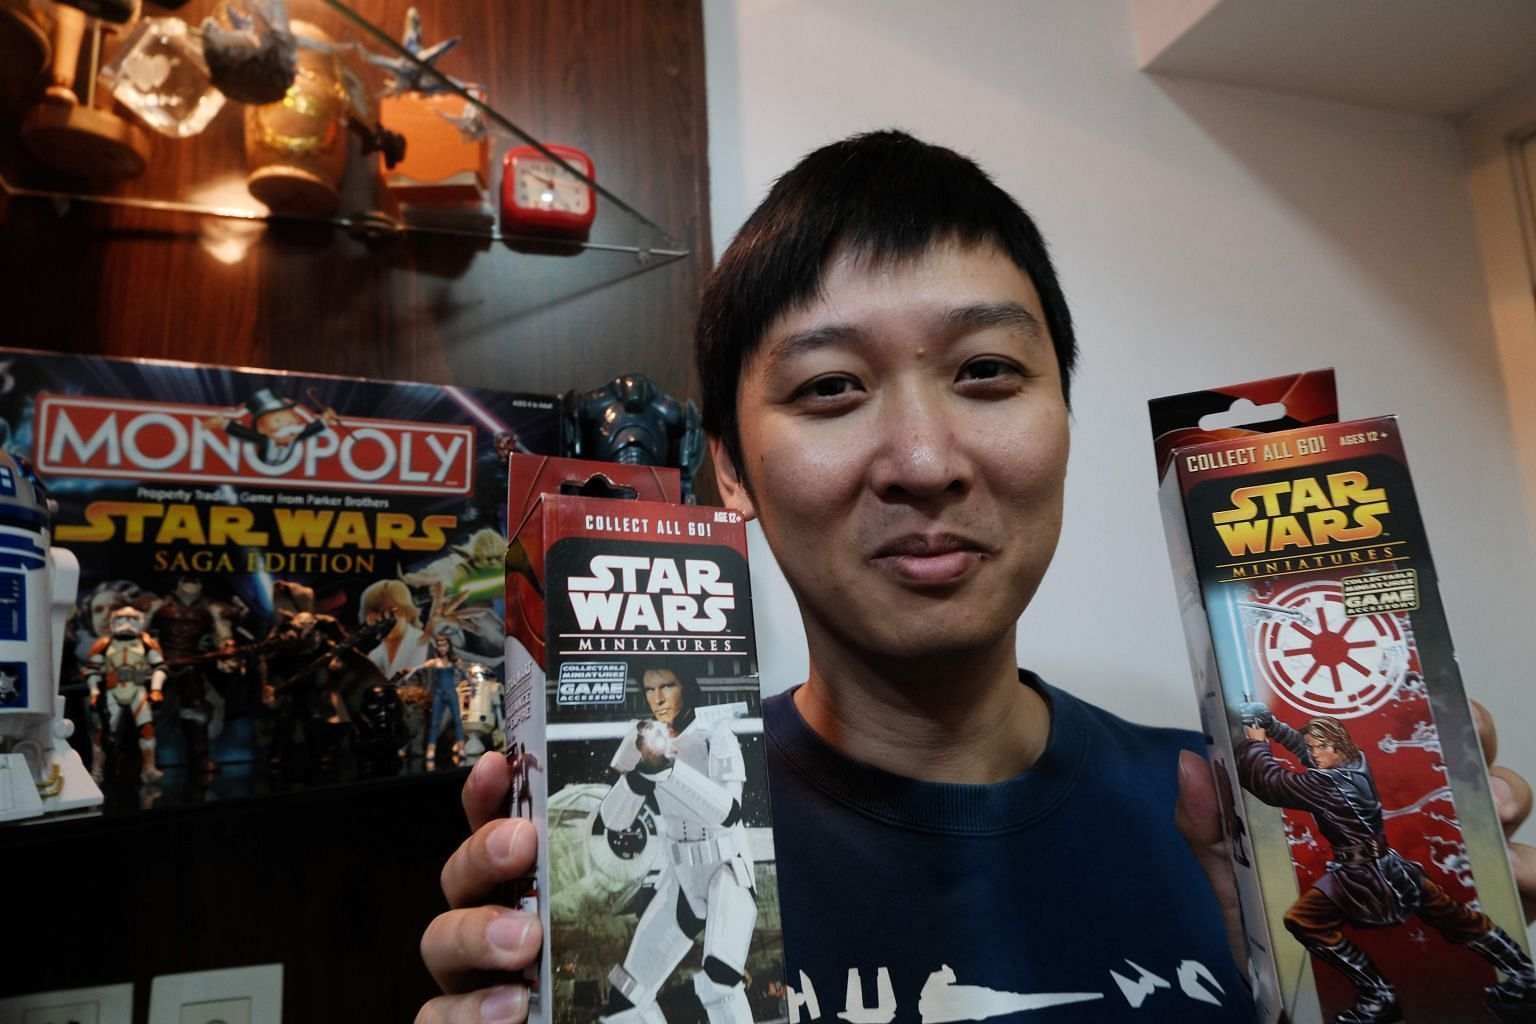 Mr Chen Tao, who runs one of China's biggest online Star Wars fan groups, with Star Wars collectibles at his home in Shanghai. He is a rare superfan in the country.